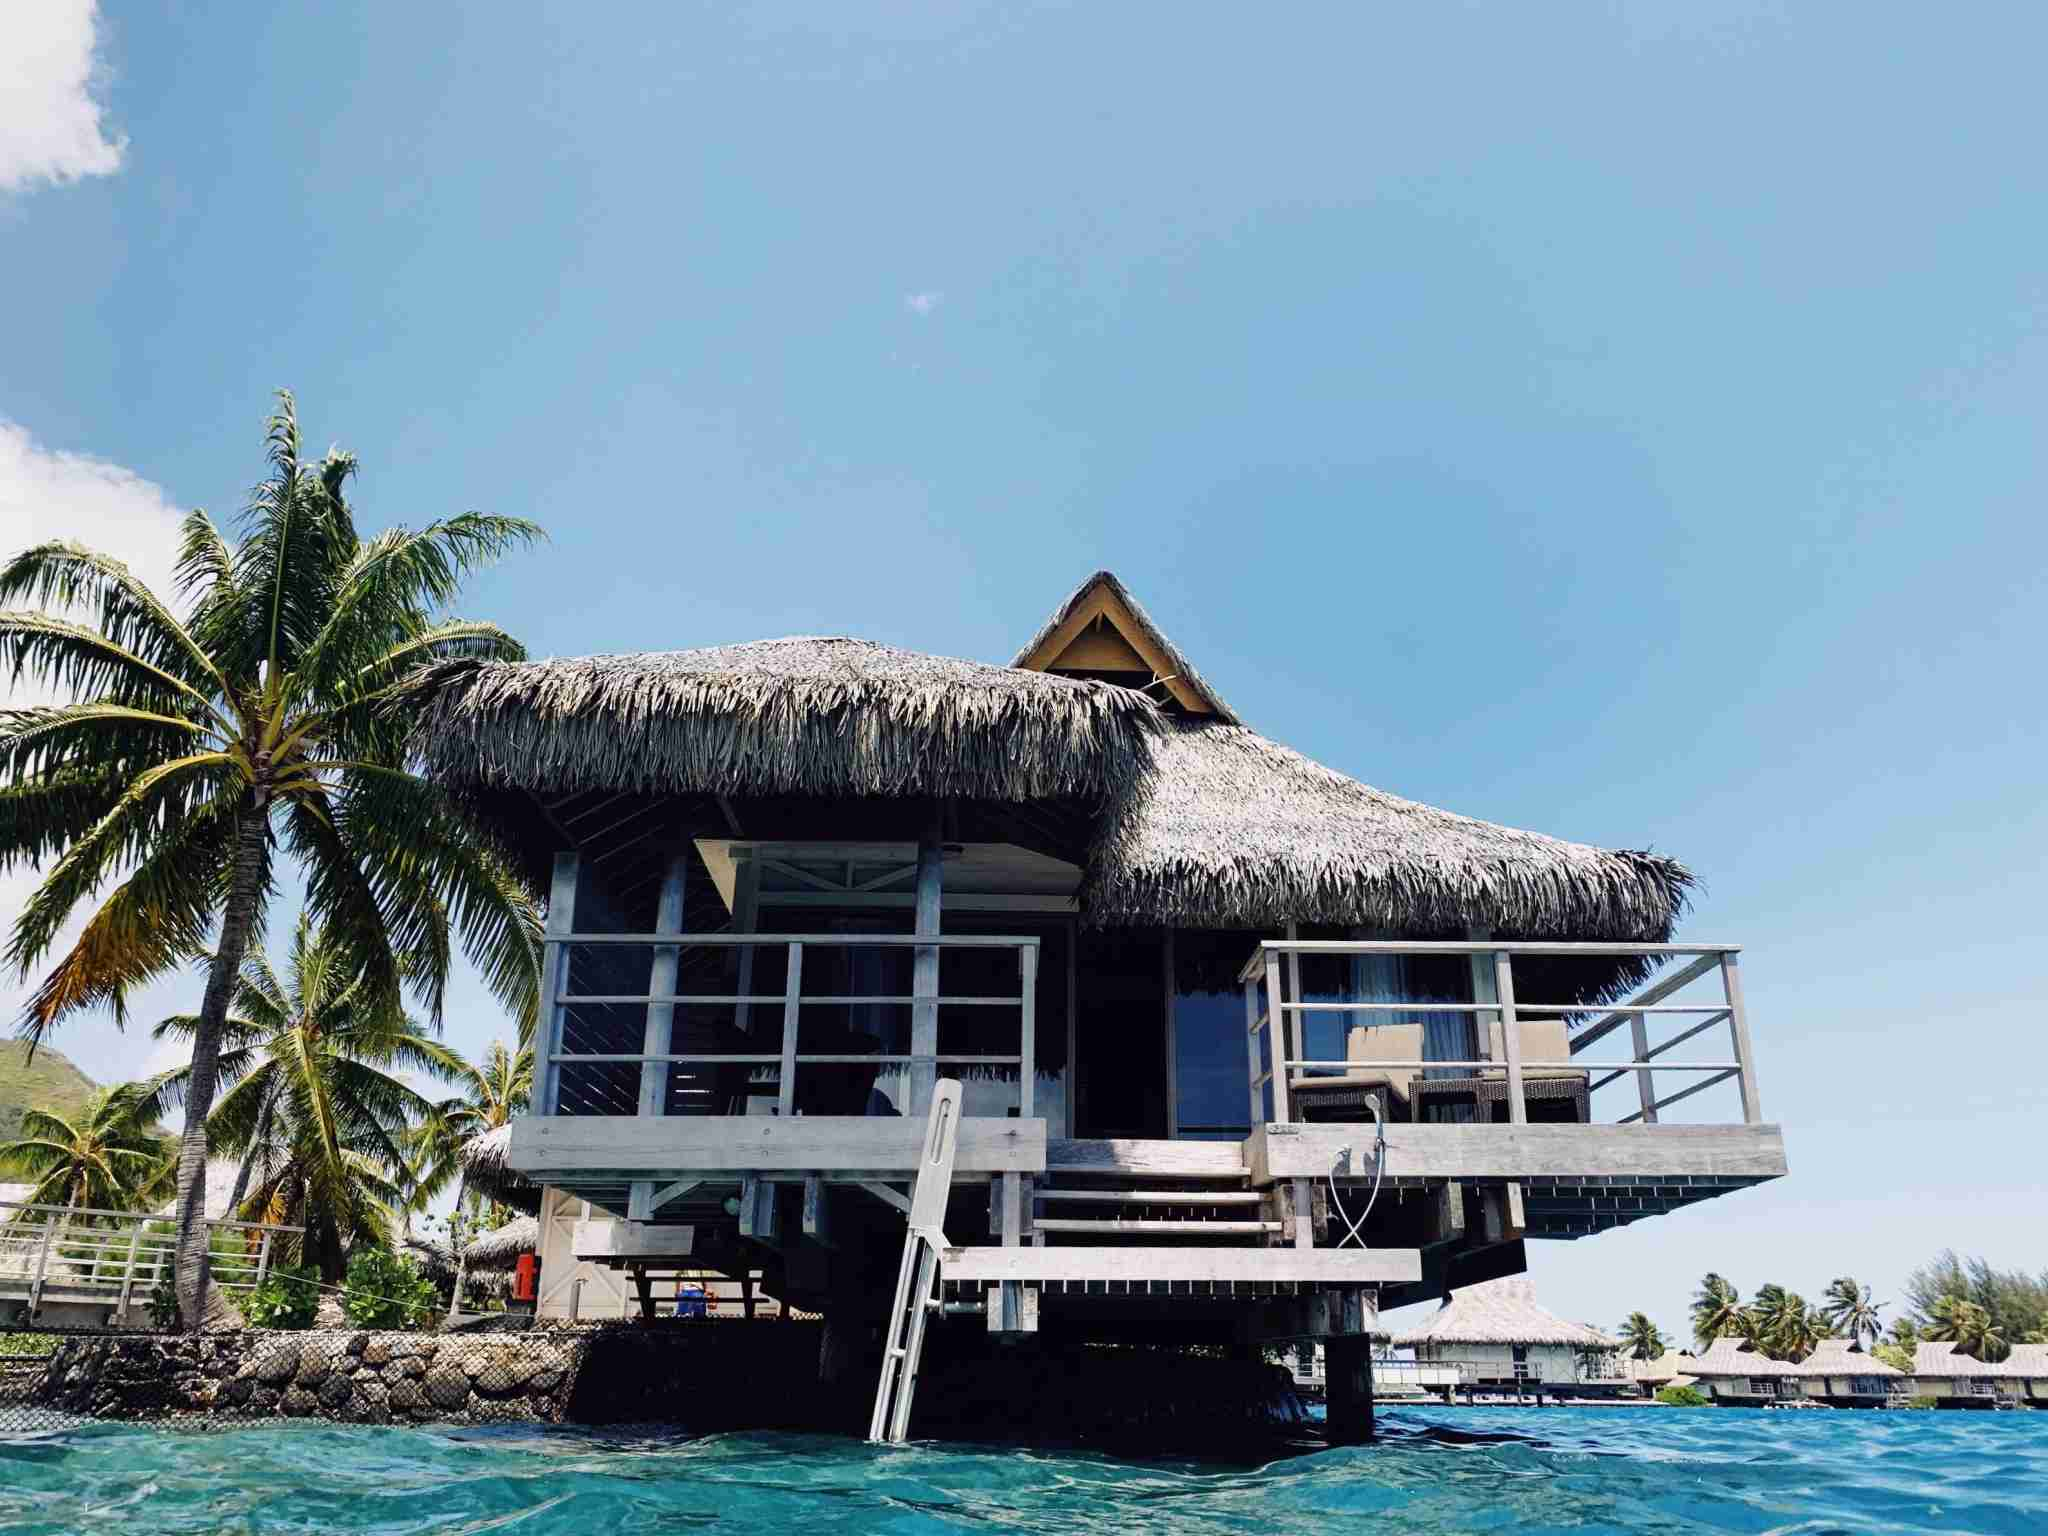 InterContinental Resort and Spa Moorea - overwater bungalow rear porch from water